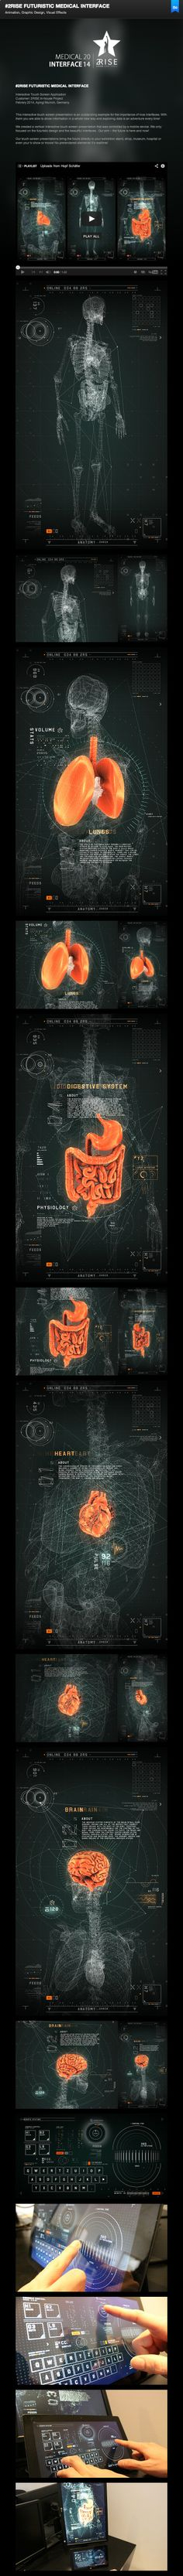 FUTURISTIC MEDICAL INTERFACE by 2RISE